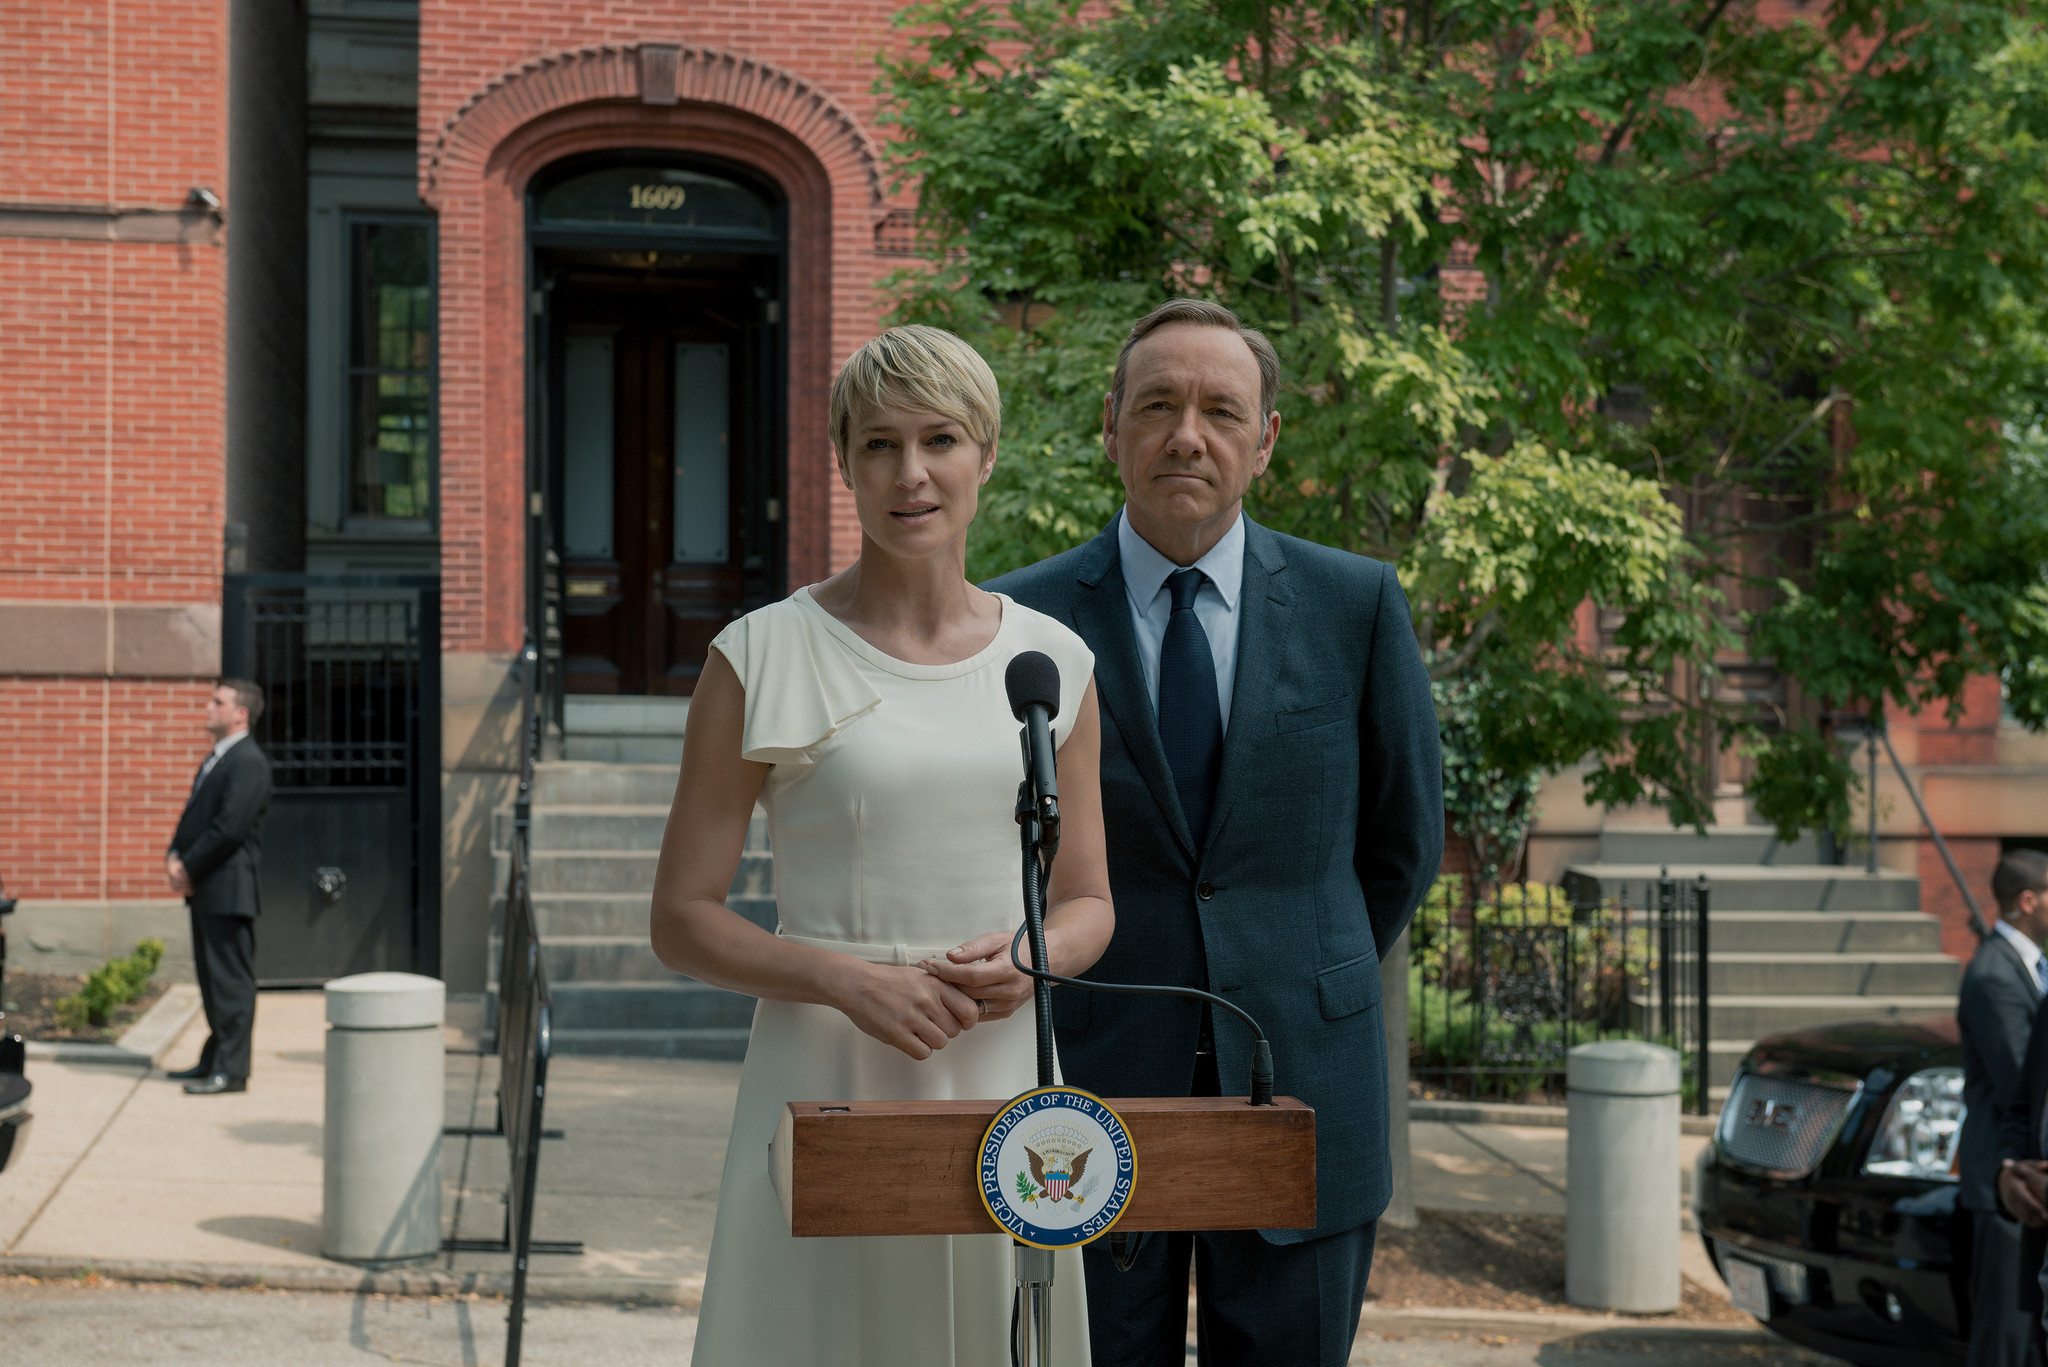 'House of Cards' filming locations in the Baltimore area